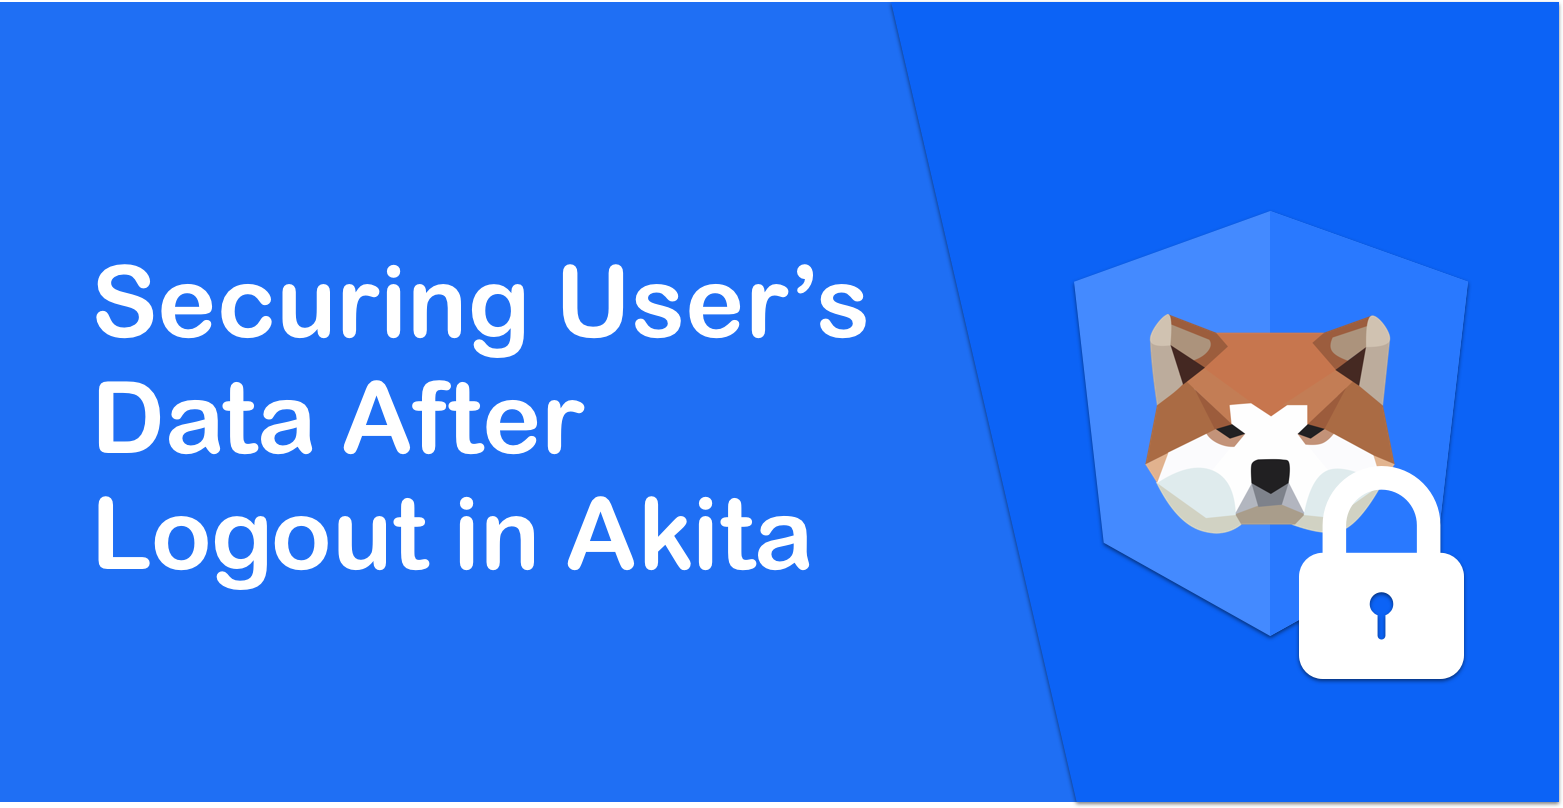 How to Secure Your User's Data After Logout in Akita